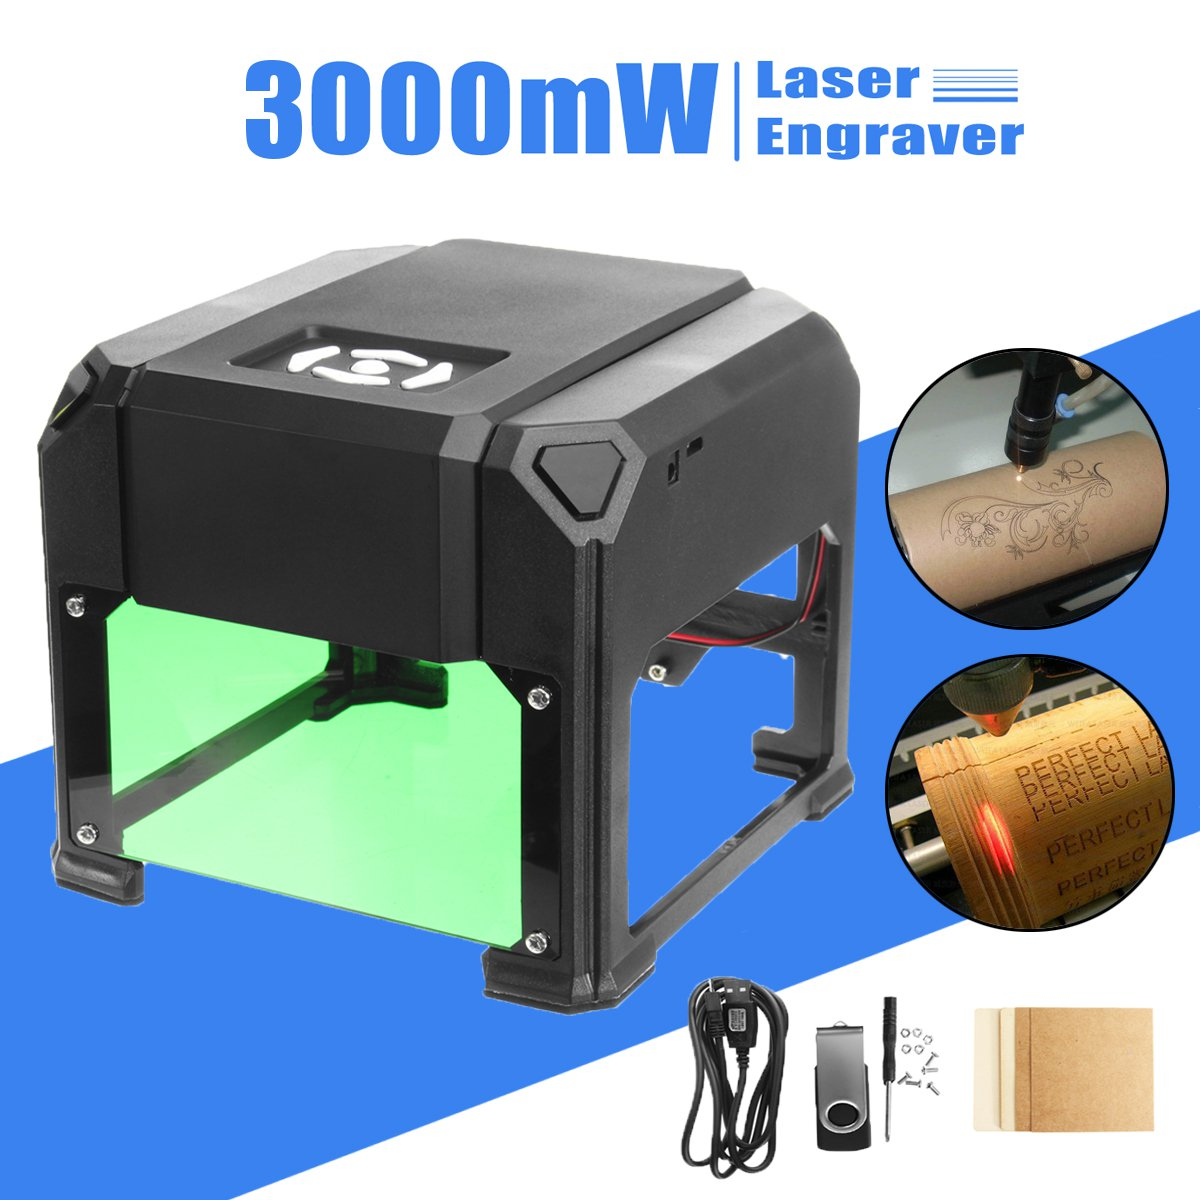 Mini USB 3000mW CNC Laser Engraving Machine 110V220V DIY Home Engraver Desktop Wood Router/Cutter/Printer FOR WIN/Mac OS System